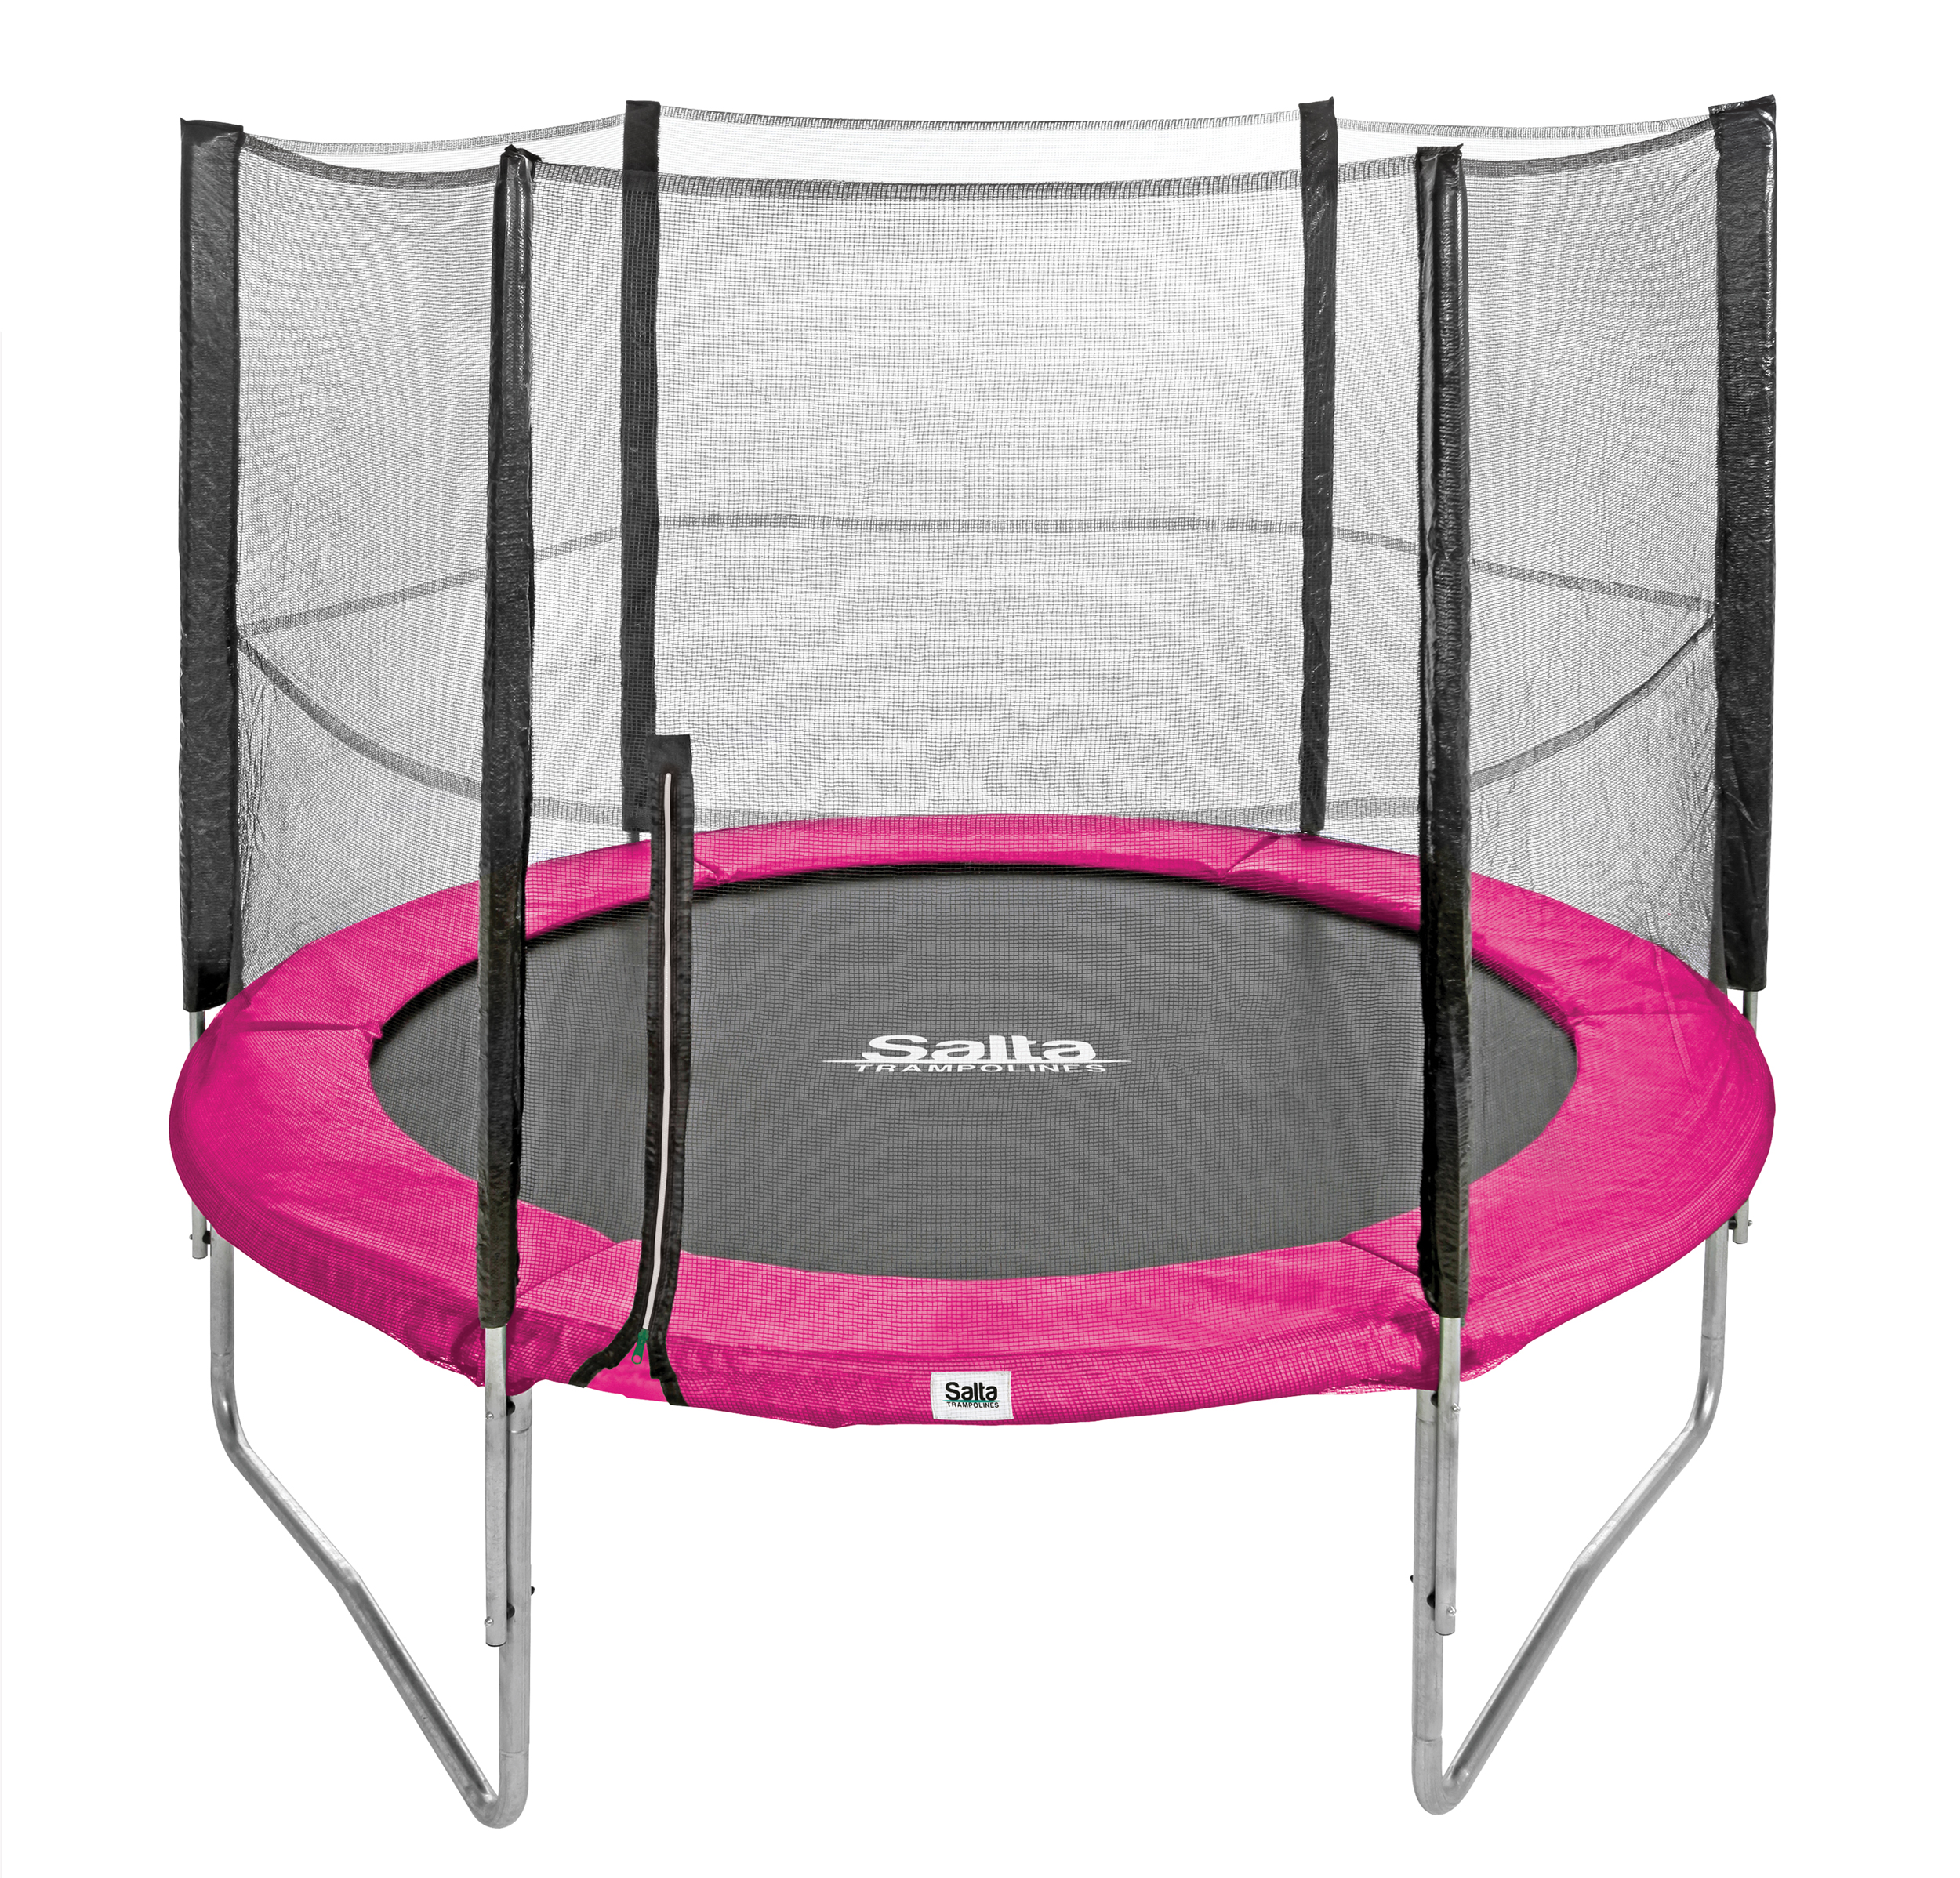 Image of   Salta 10 ft Disport Combo Trampolin runde - 305 cm - Pink